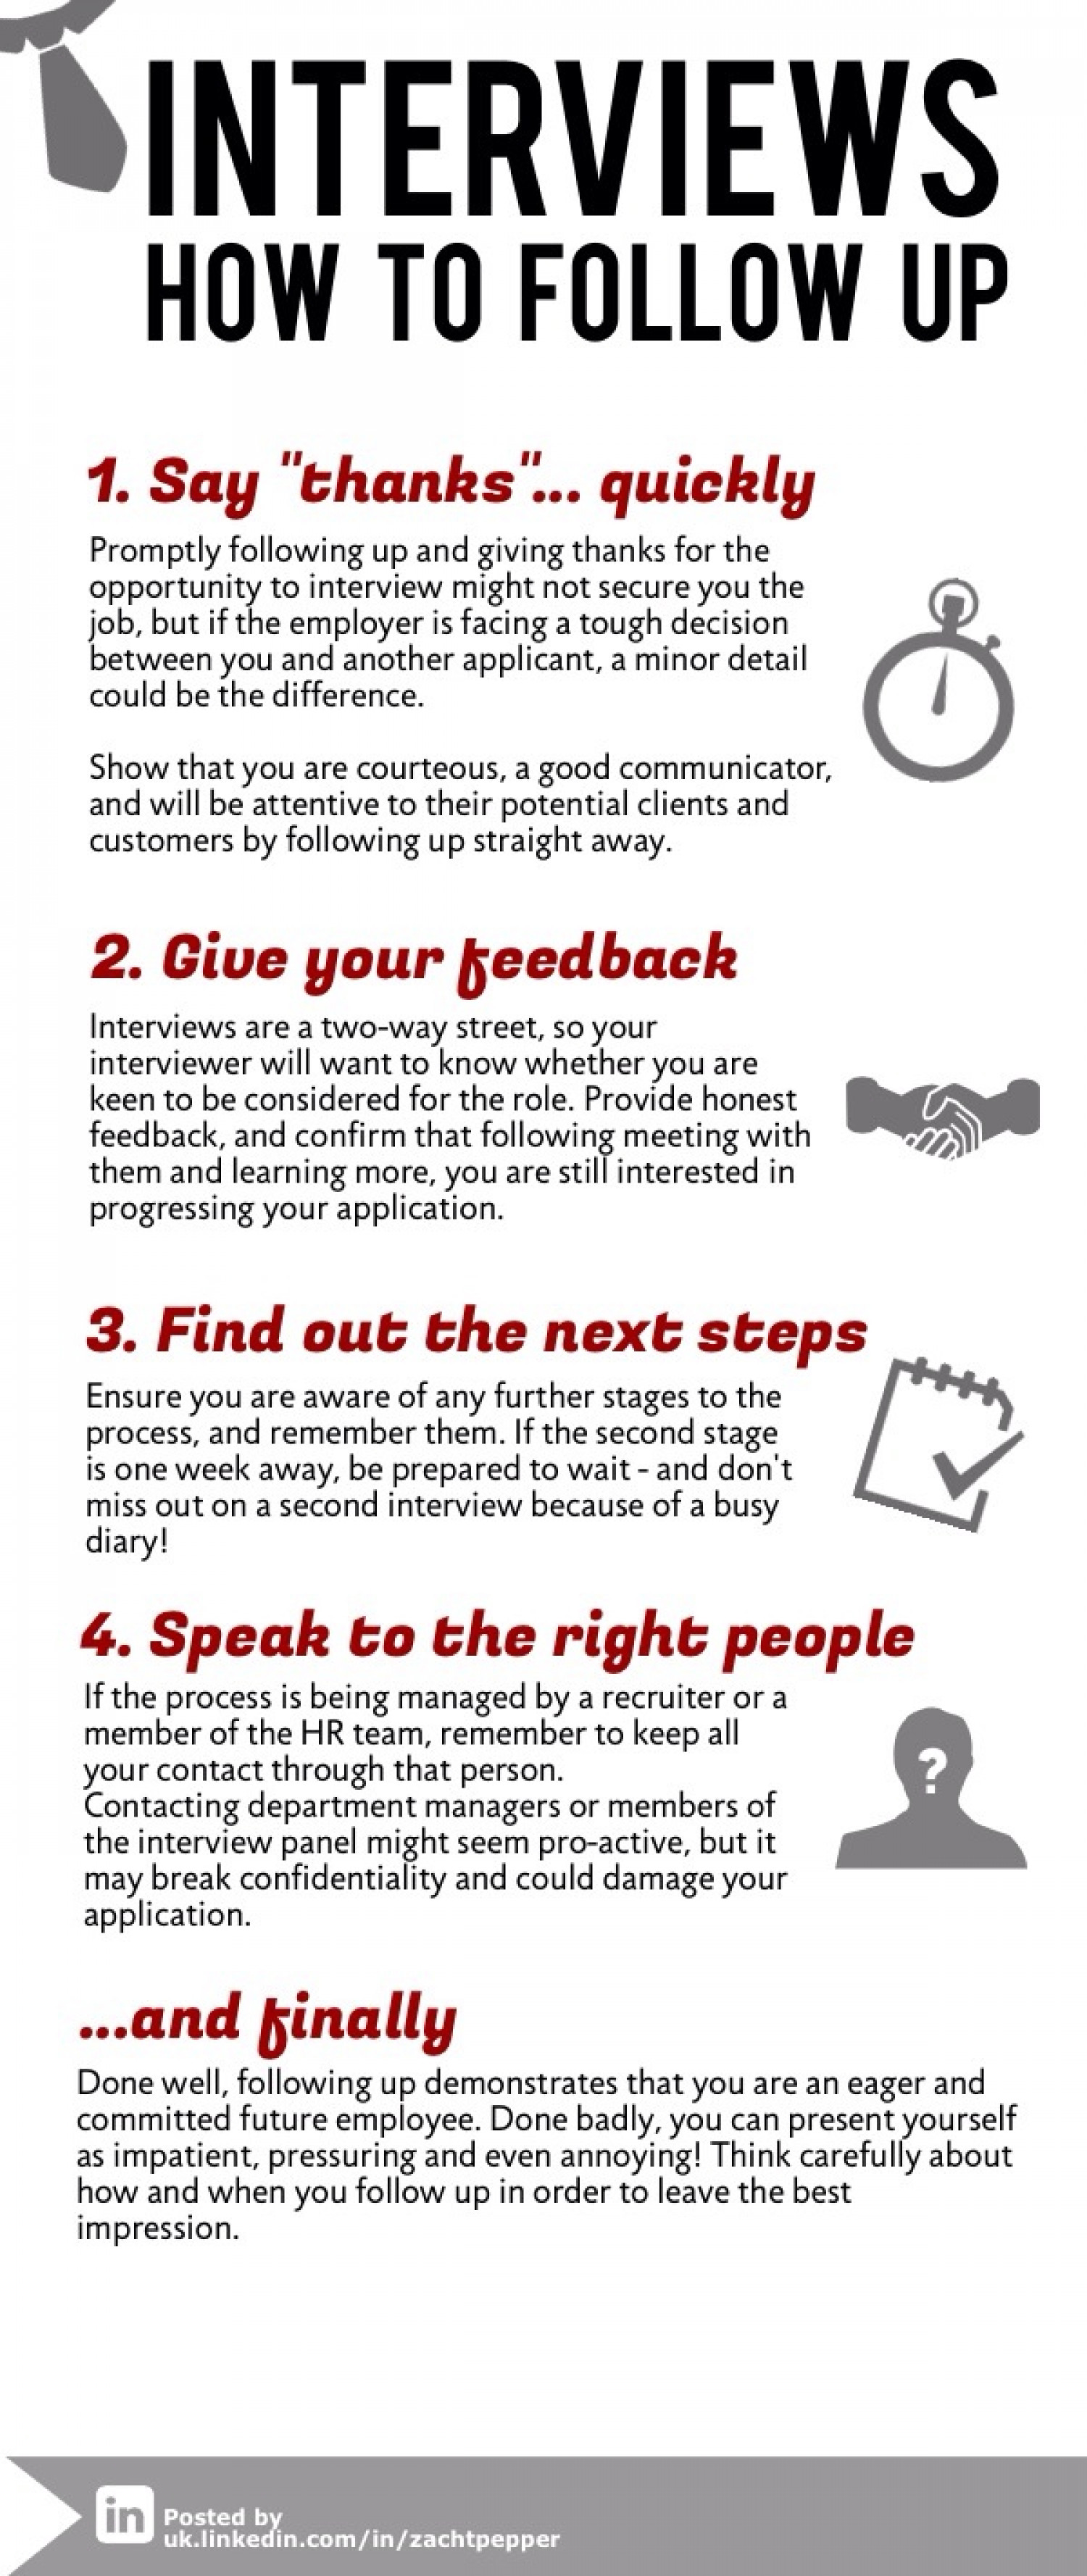 interviews how to follow up infographic